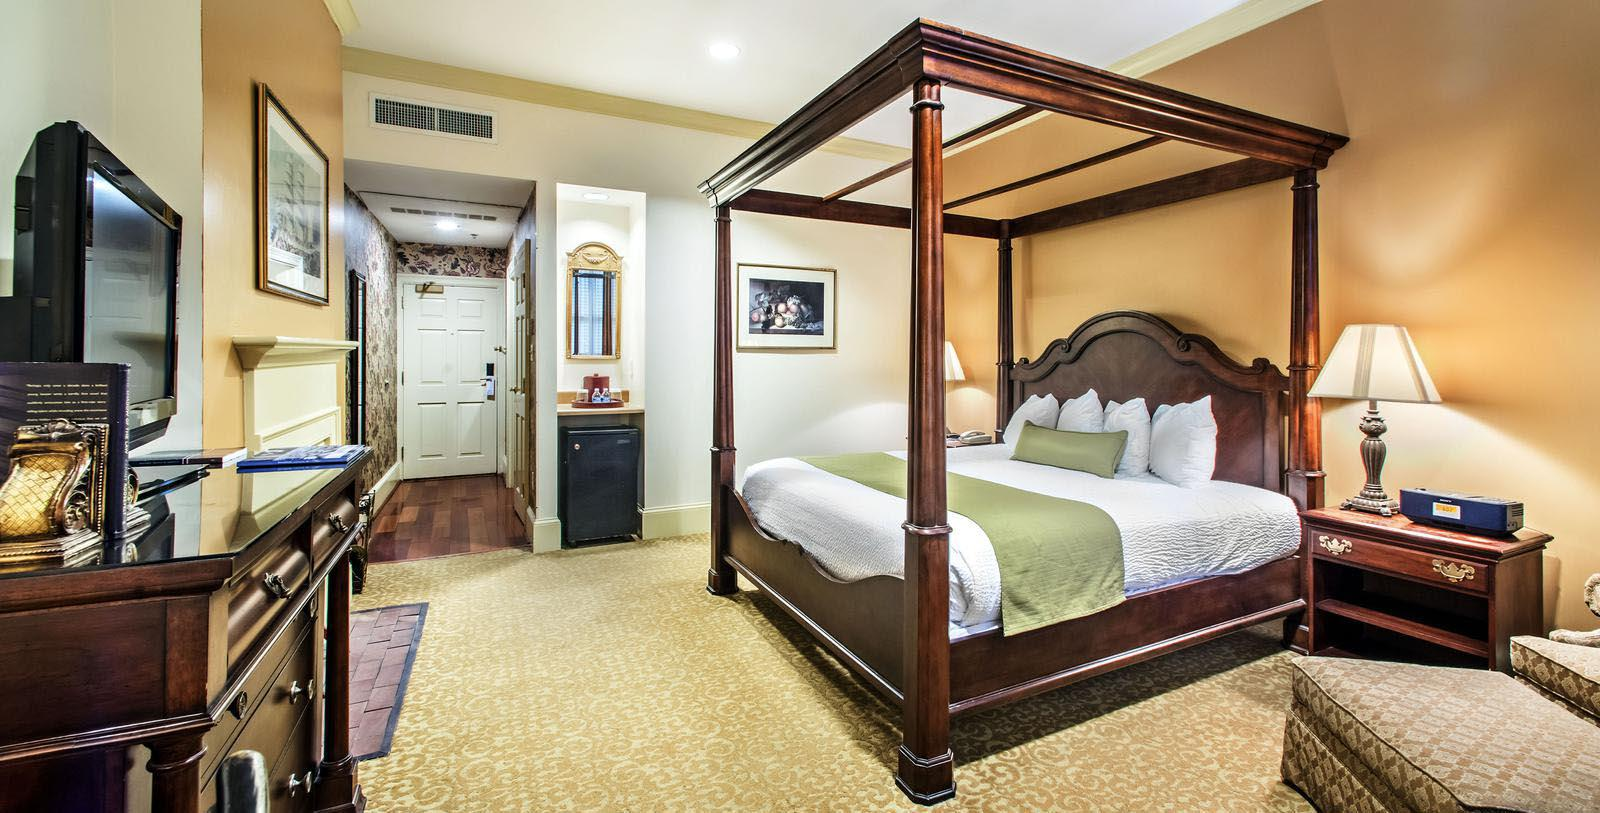 Image of Guestroom River Street Inn, 1817, Member of Historic Hotels of America, in Savannah, Georgia, Location